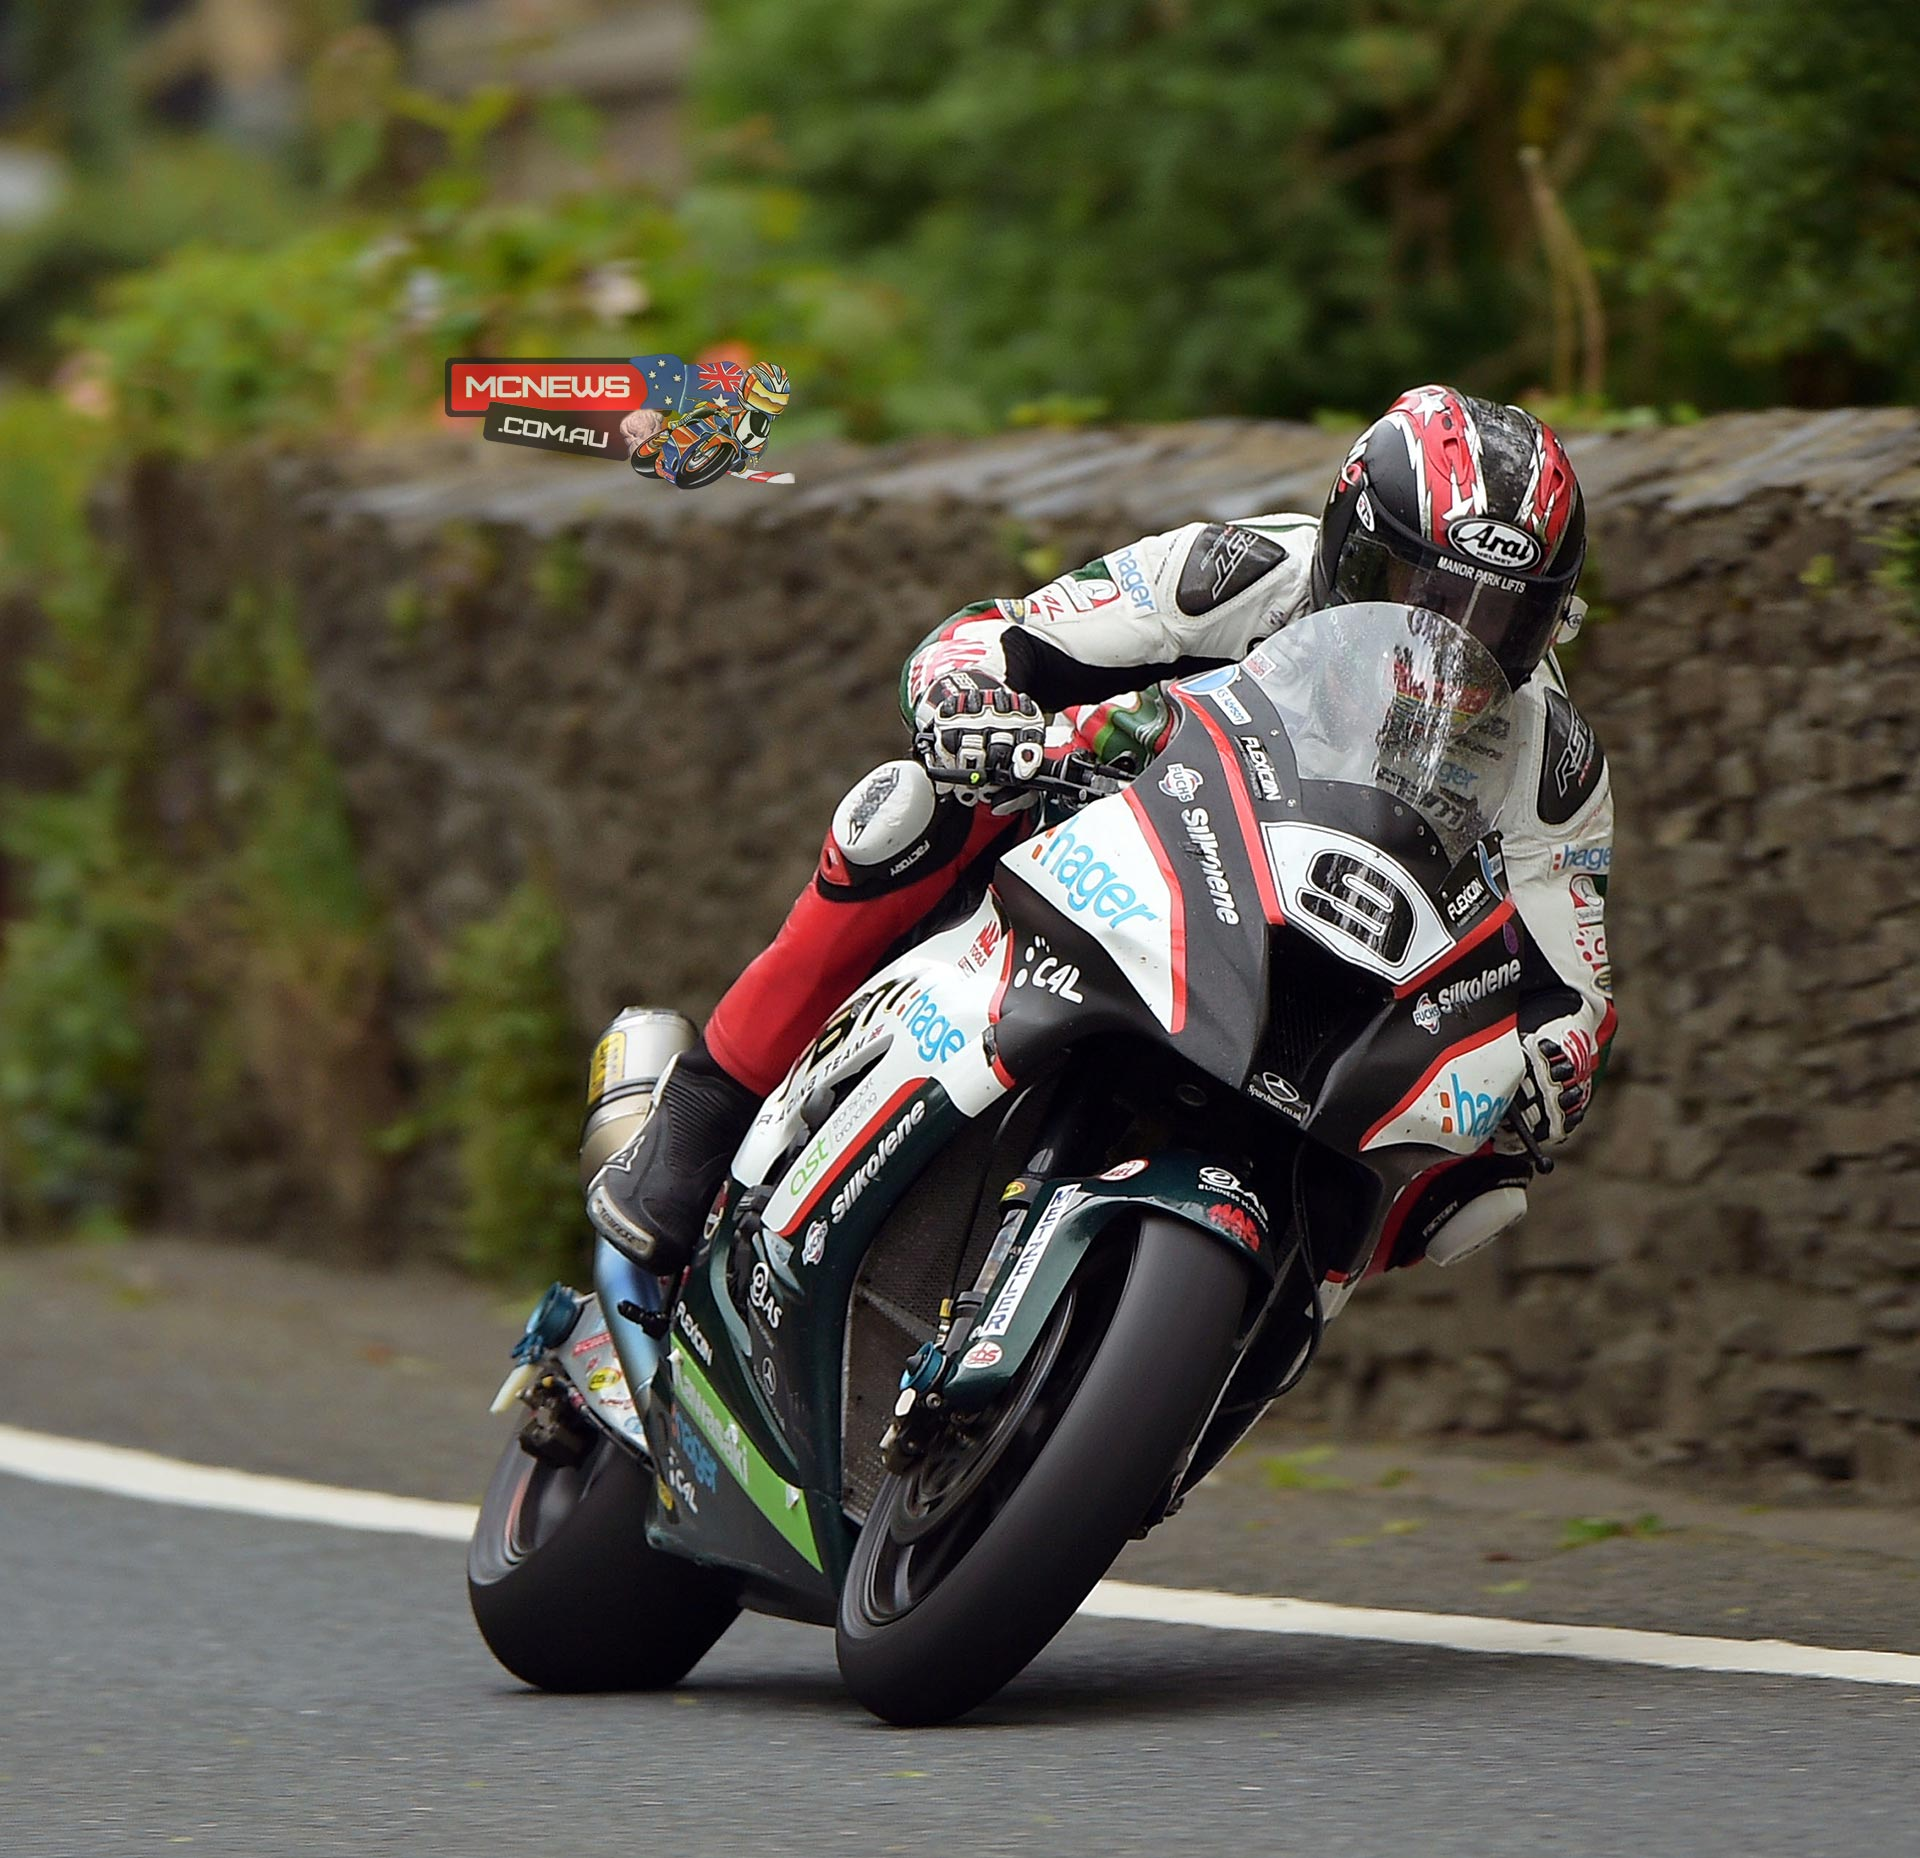 Ian Hutchinson heads the Superbike field and was first to break the 130mph barrier at TT 2015 on his second lap with a speed of 130.266.